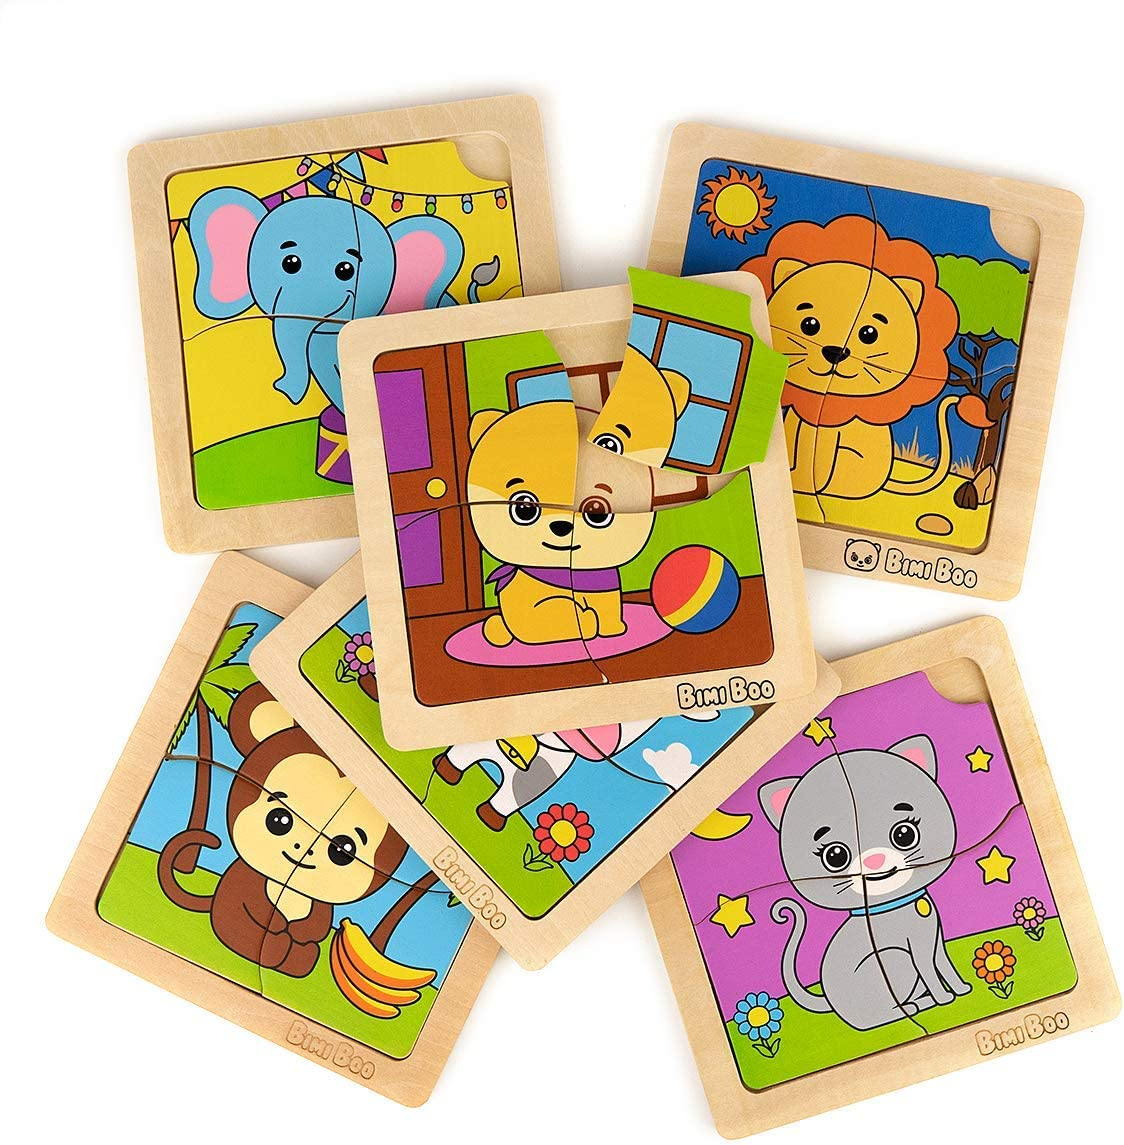 Bimi Boo Animal Wooden Jigsaw Puzzle for Preschool Kids 2 Years Old and Up (Set of 6 Learning 4 Pieces Toddler Puzzles, Solid Wood Construction)